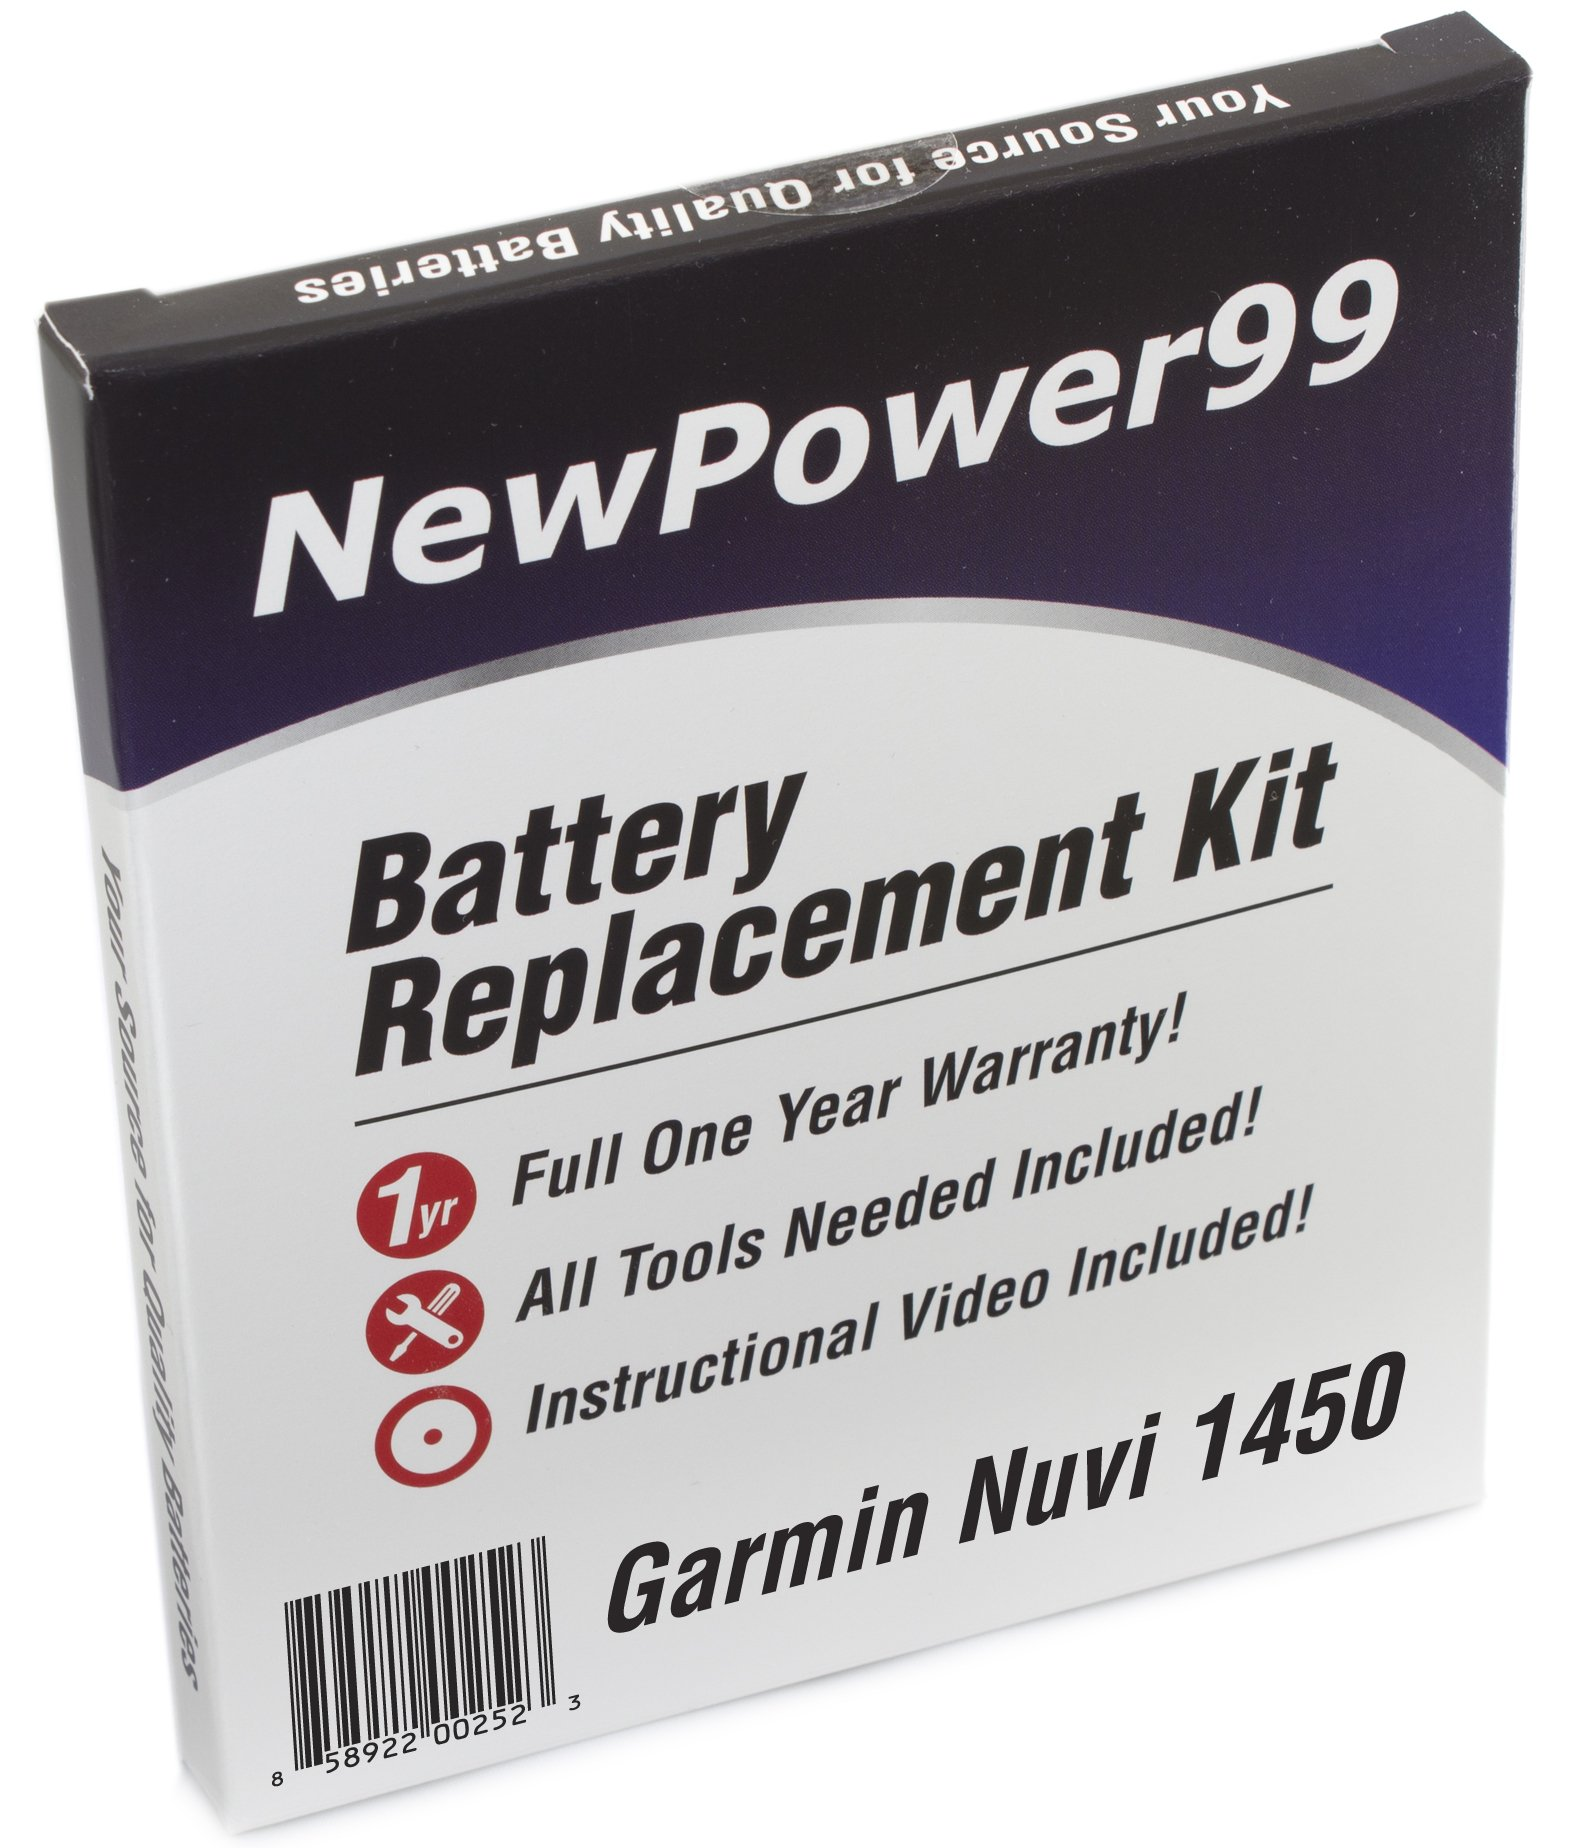 Battery Replacement Kit for Garmin Nuvi 1450 with Installation Video, Tools, and Extended Life Battery. by Garmin (Image #1)